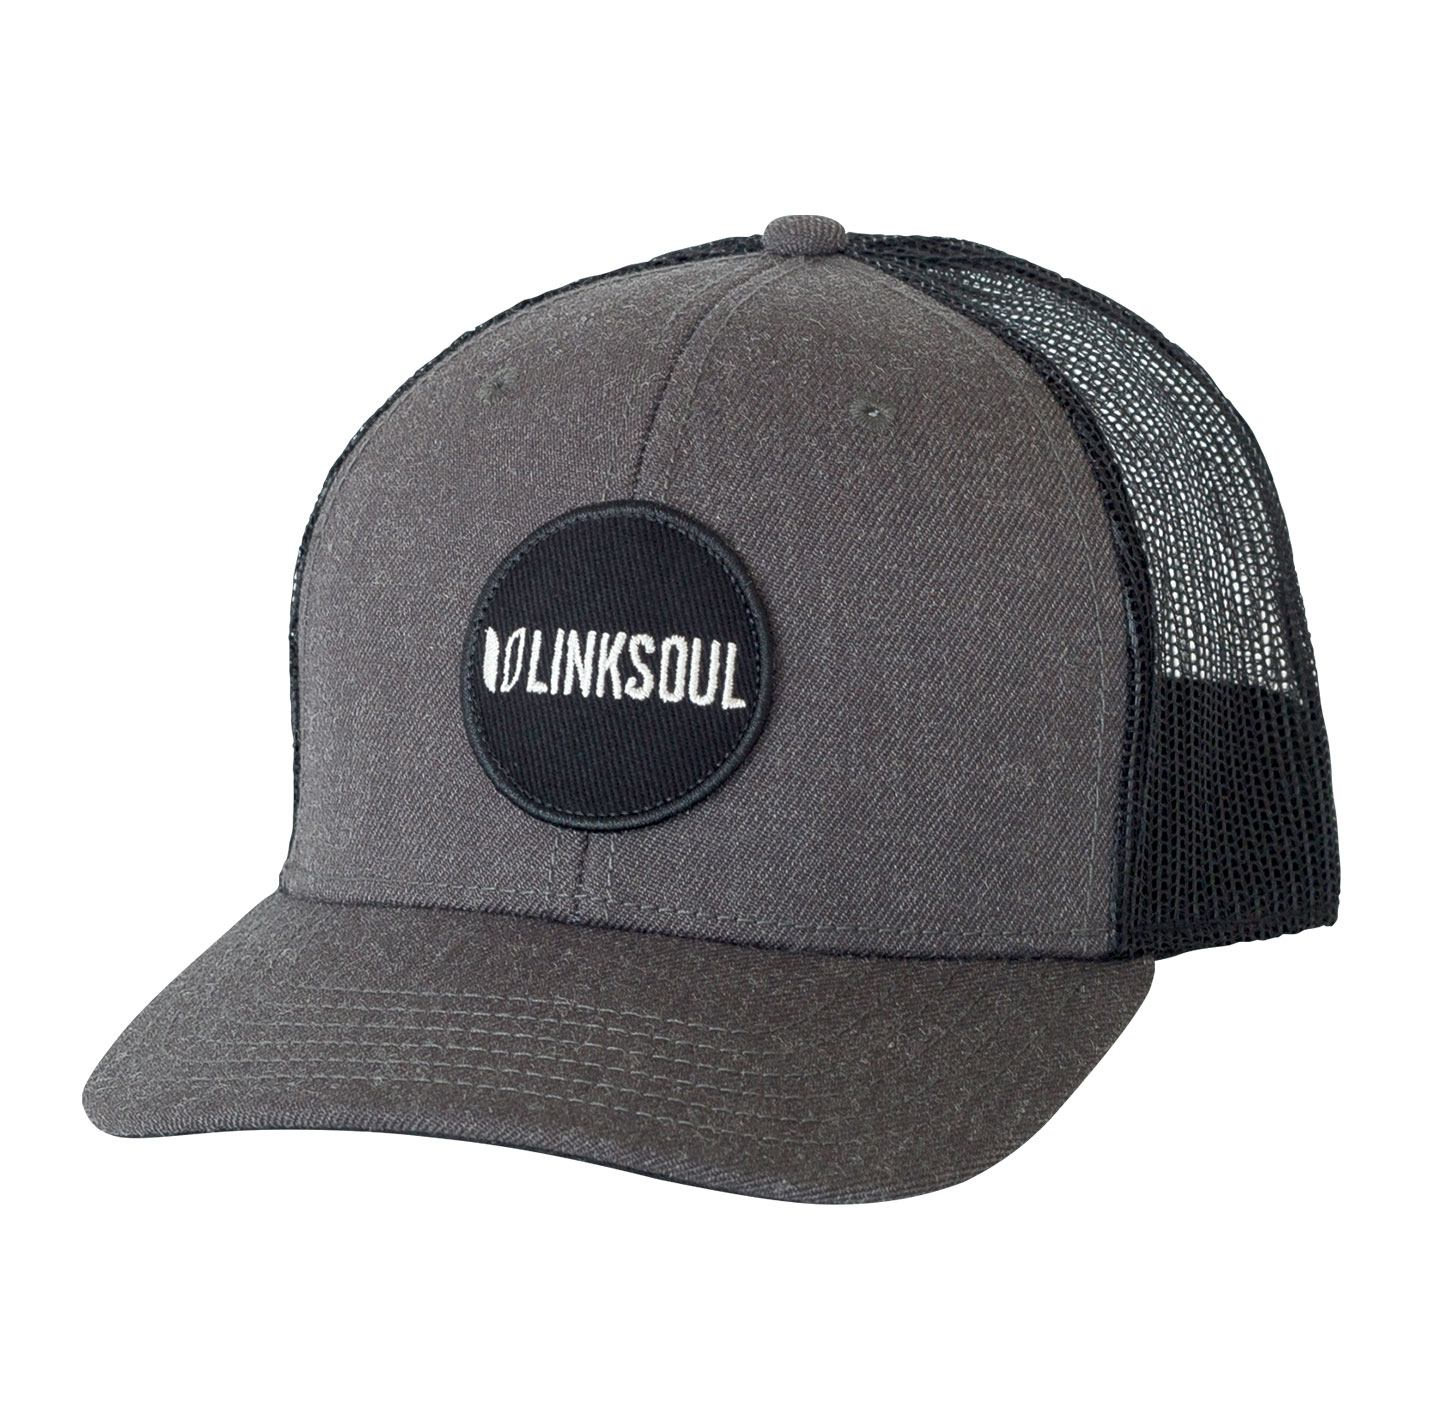 492312c0 Minor League Hat – LINKSOUL